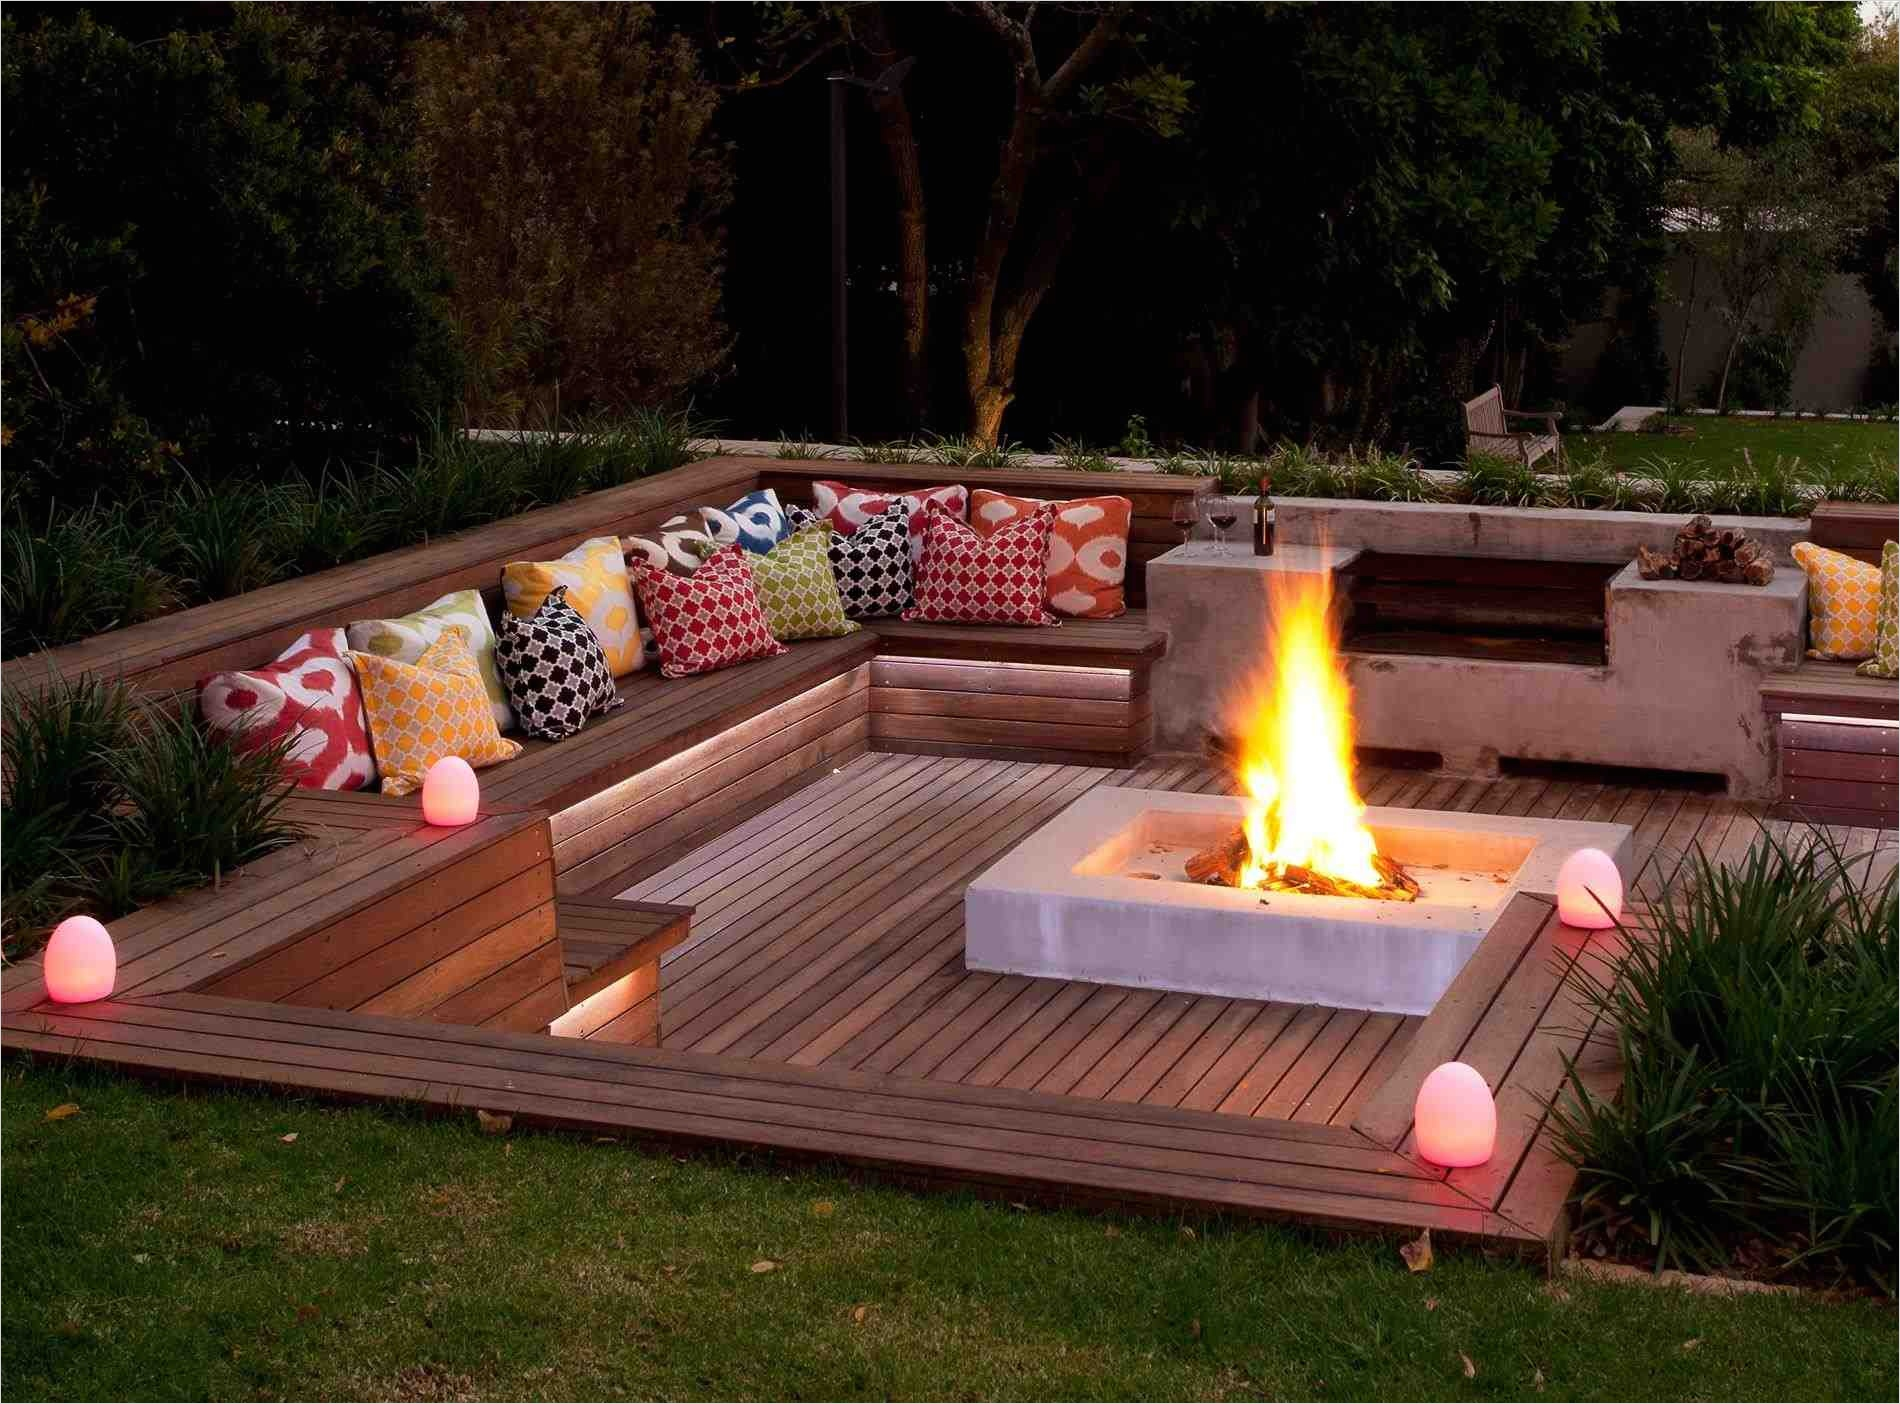 45 Perfect Backyard Bbq Landscaping Ideas 99 Outdoor Bbq Pit Ideas 5